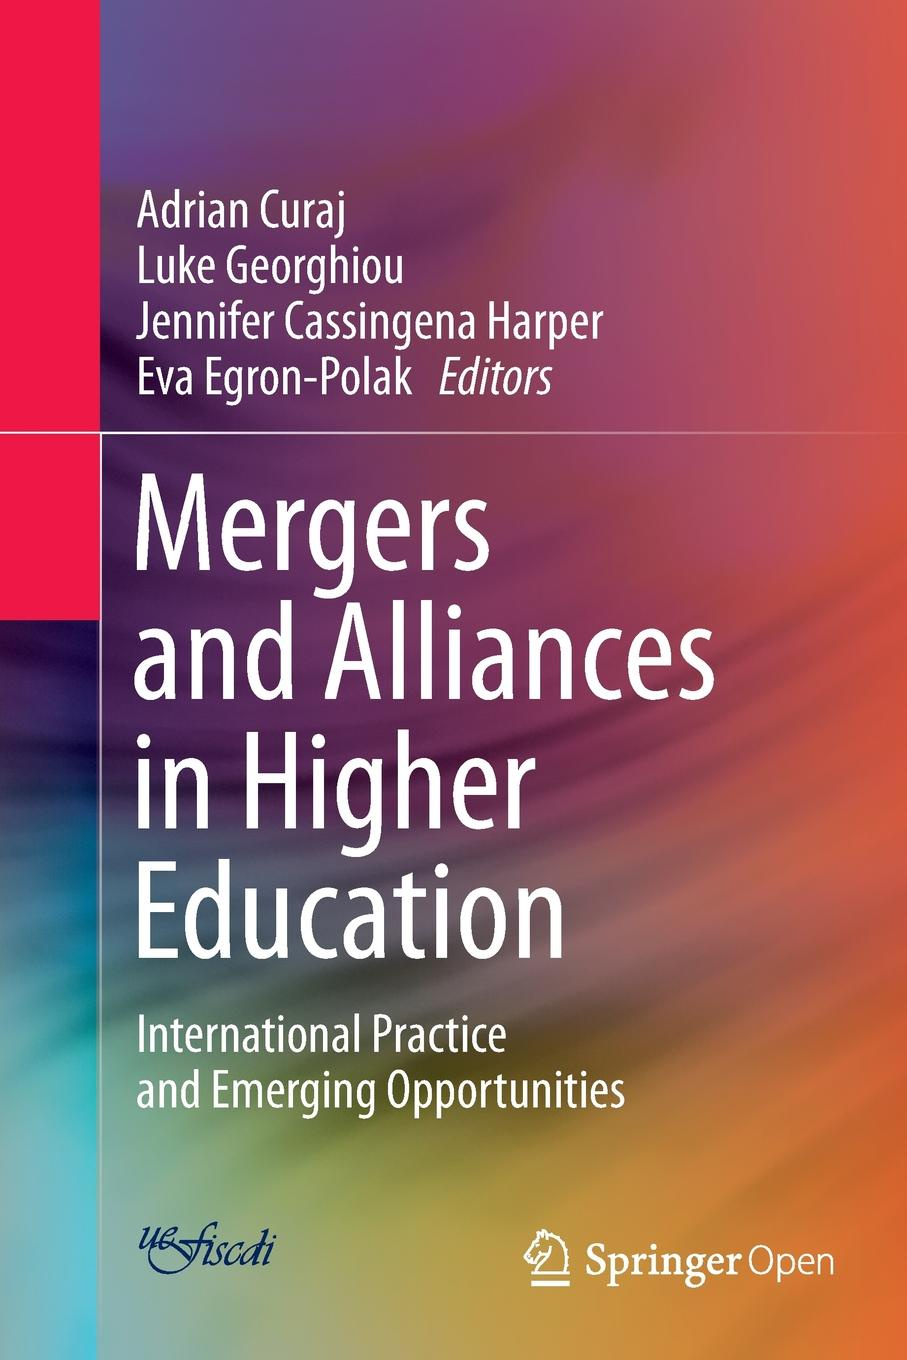 Mergers and Alliances in Higher Education. International Practice and Emerging Opportunities mezirow jack transformative learning in practice insights from community workplace and higher education